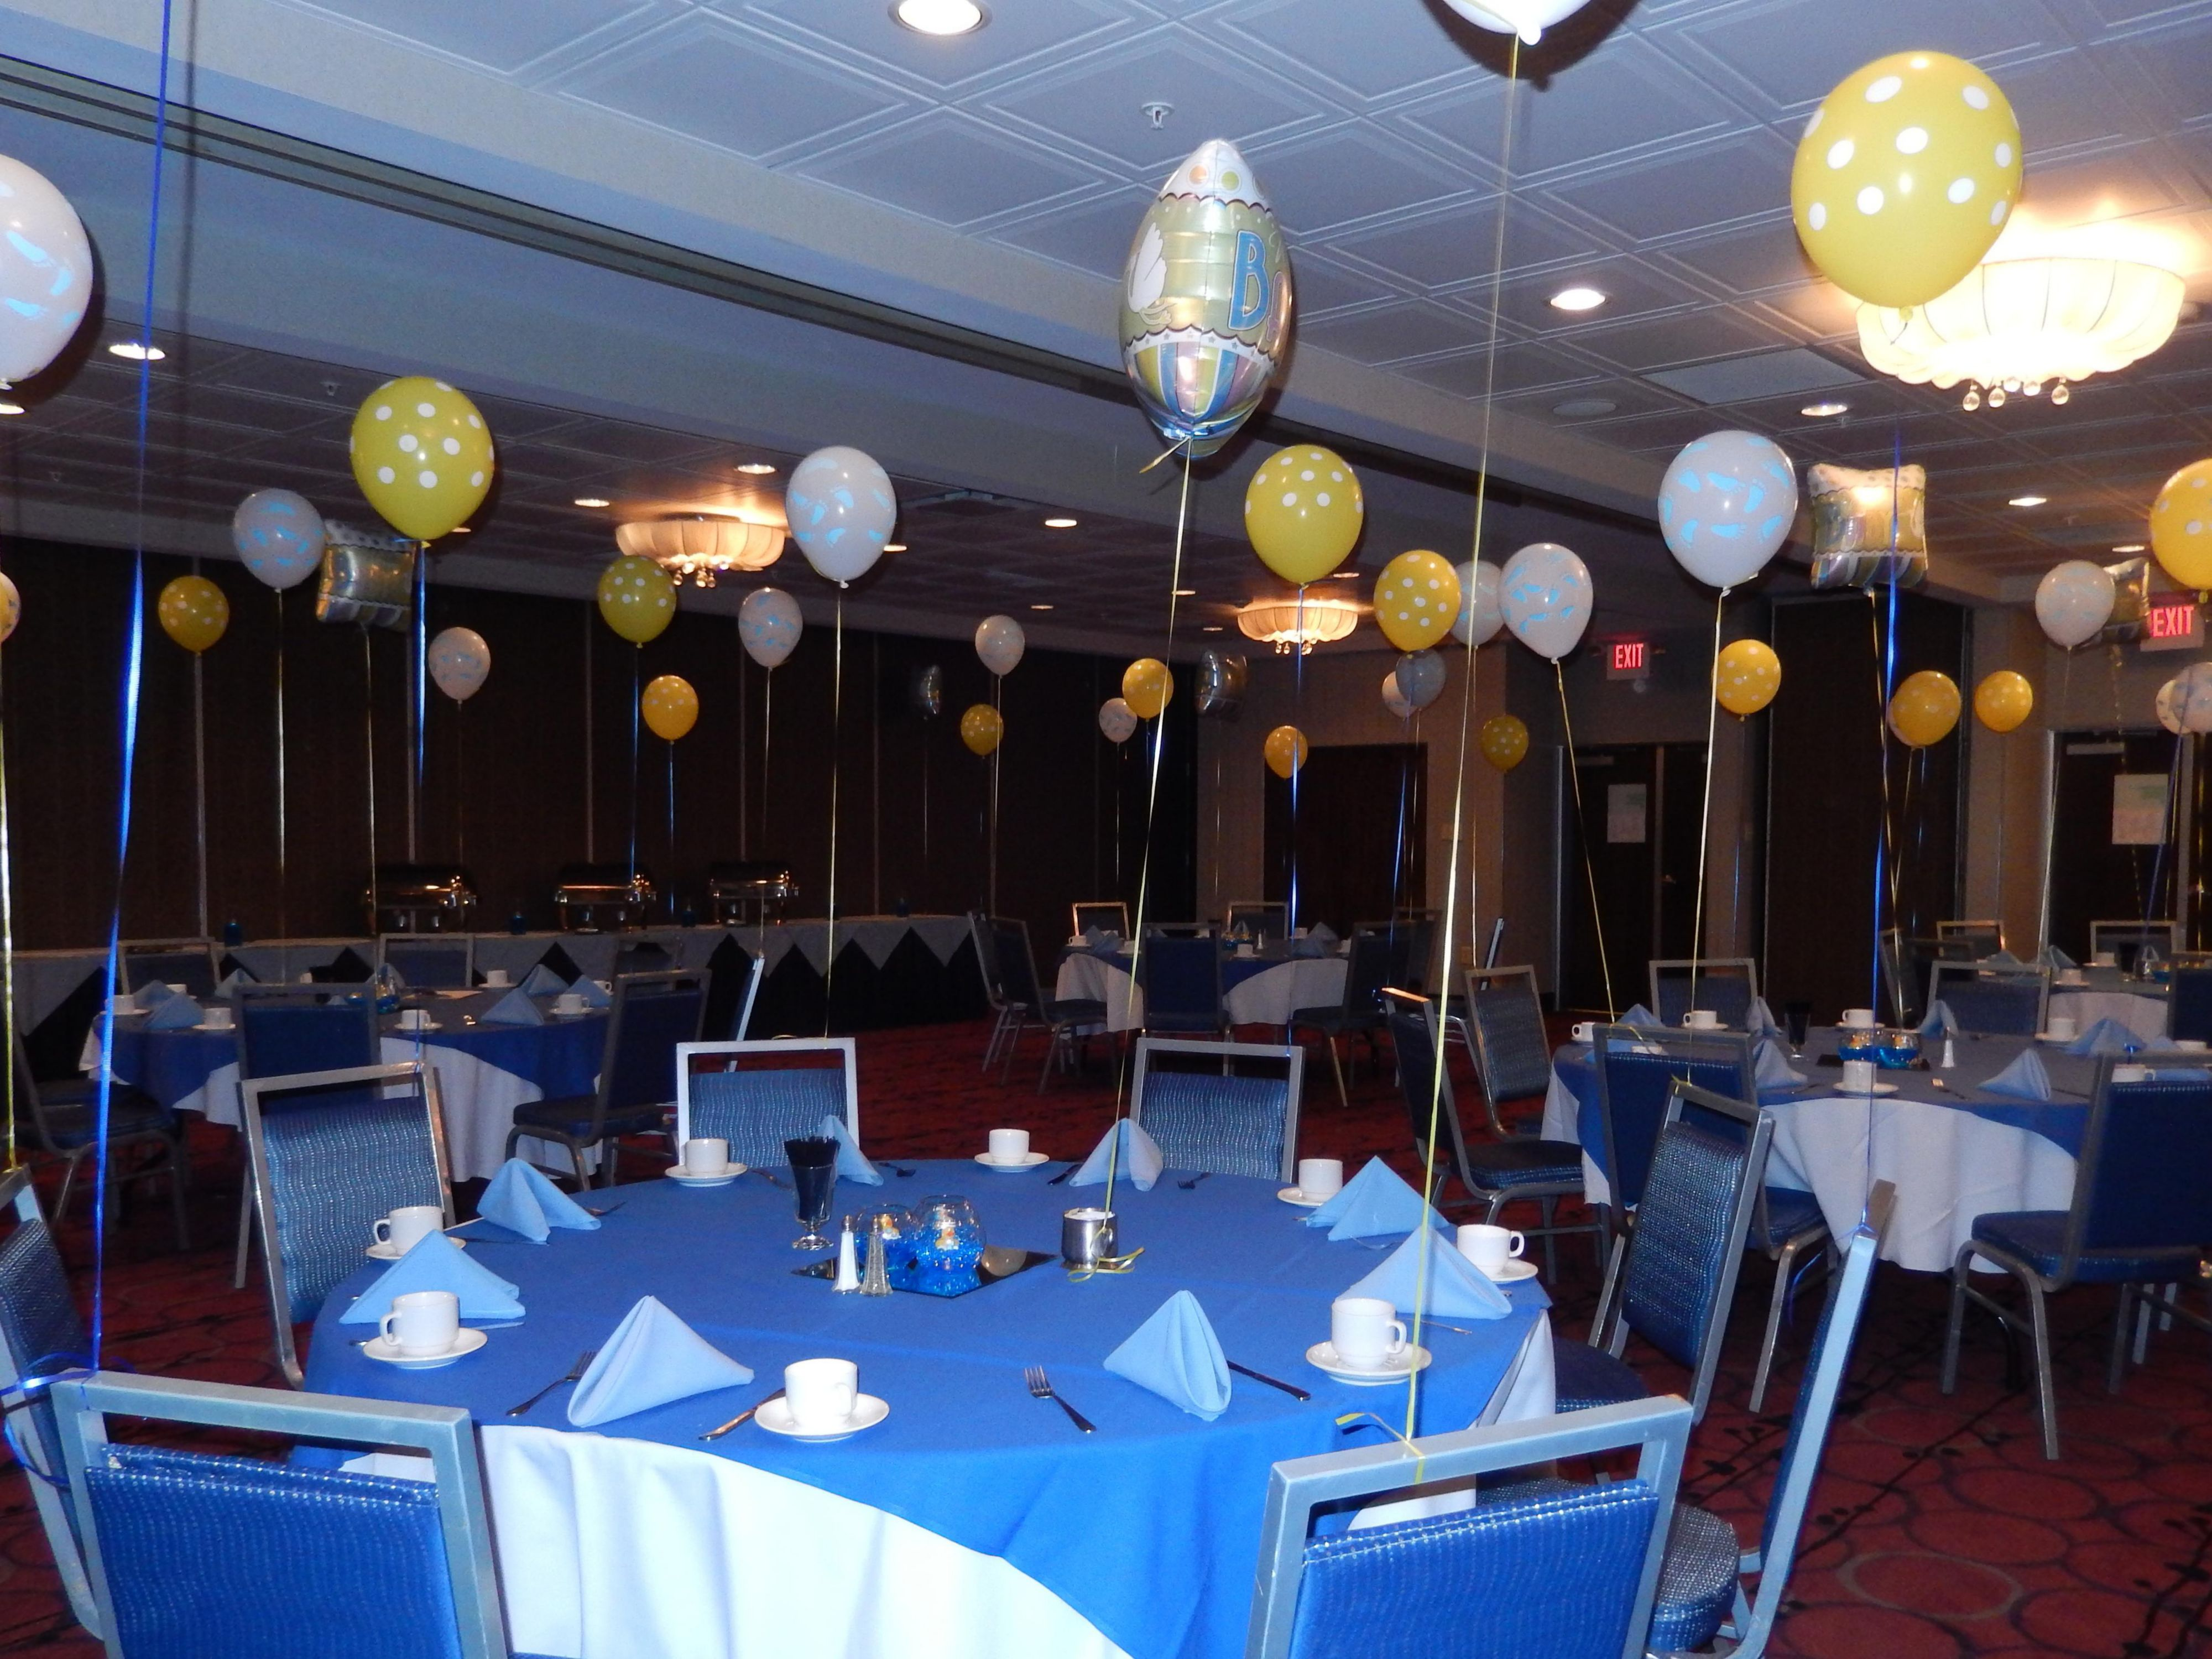 Platinum and Gold Rooms set up for a Baby Shower!